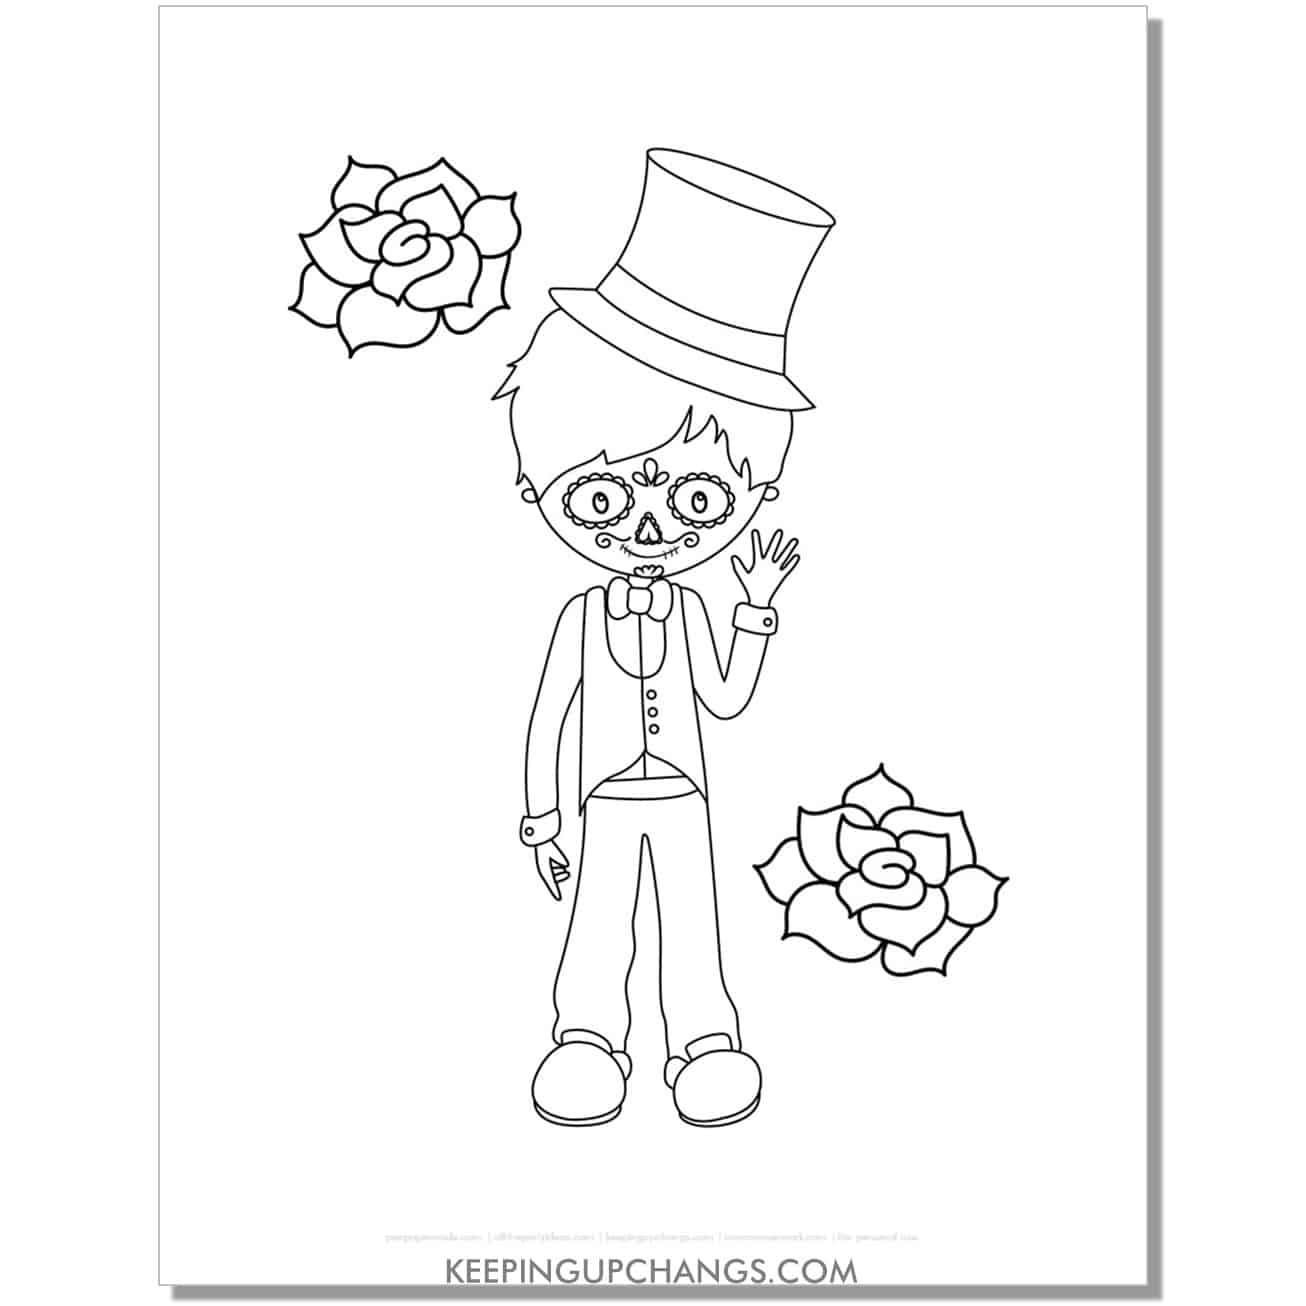 free day of the dead cute boy skeleton face coloring page.